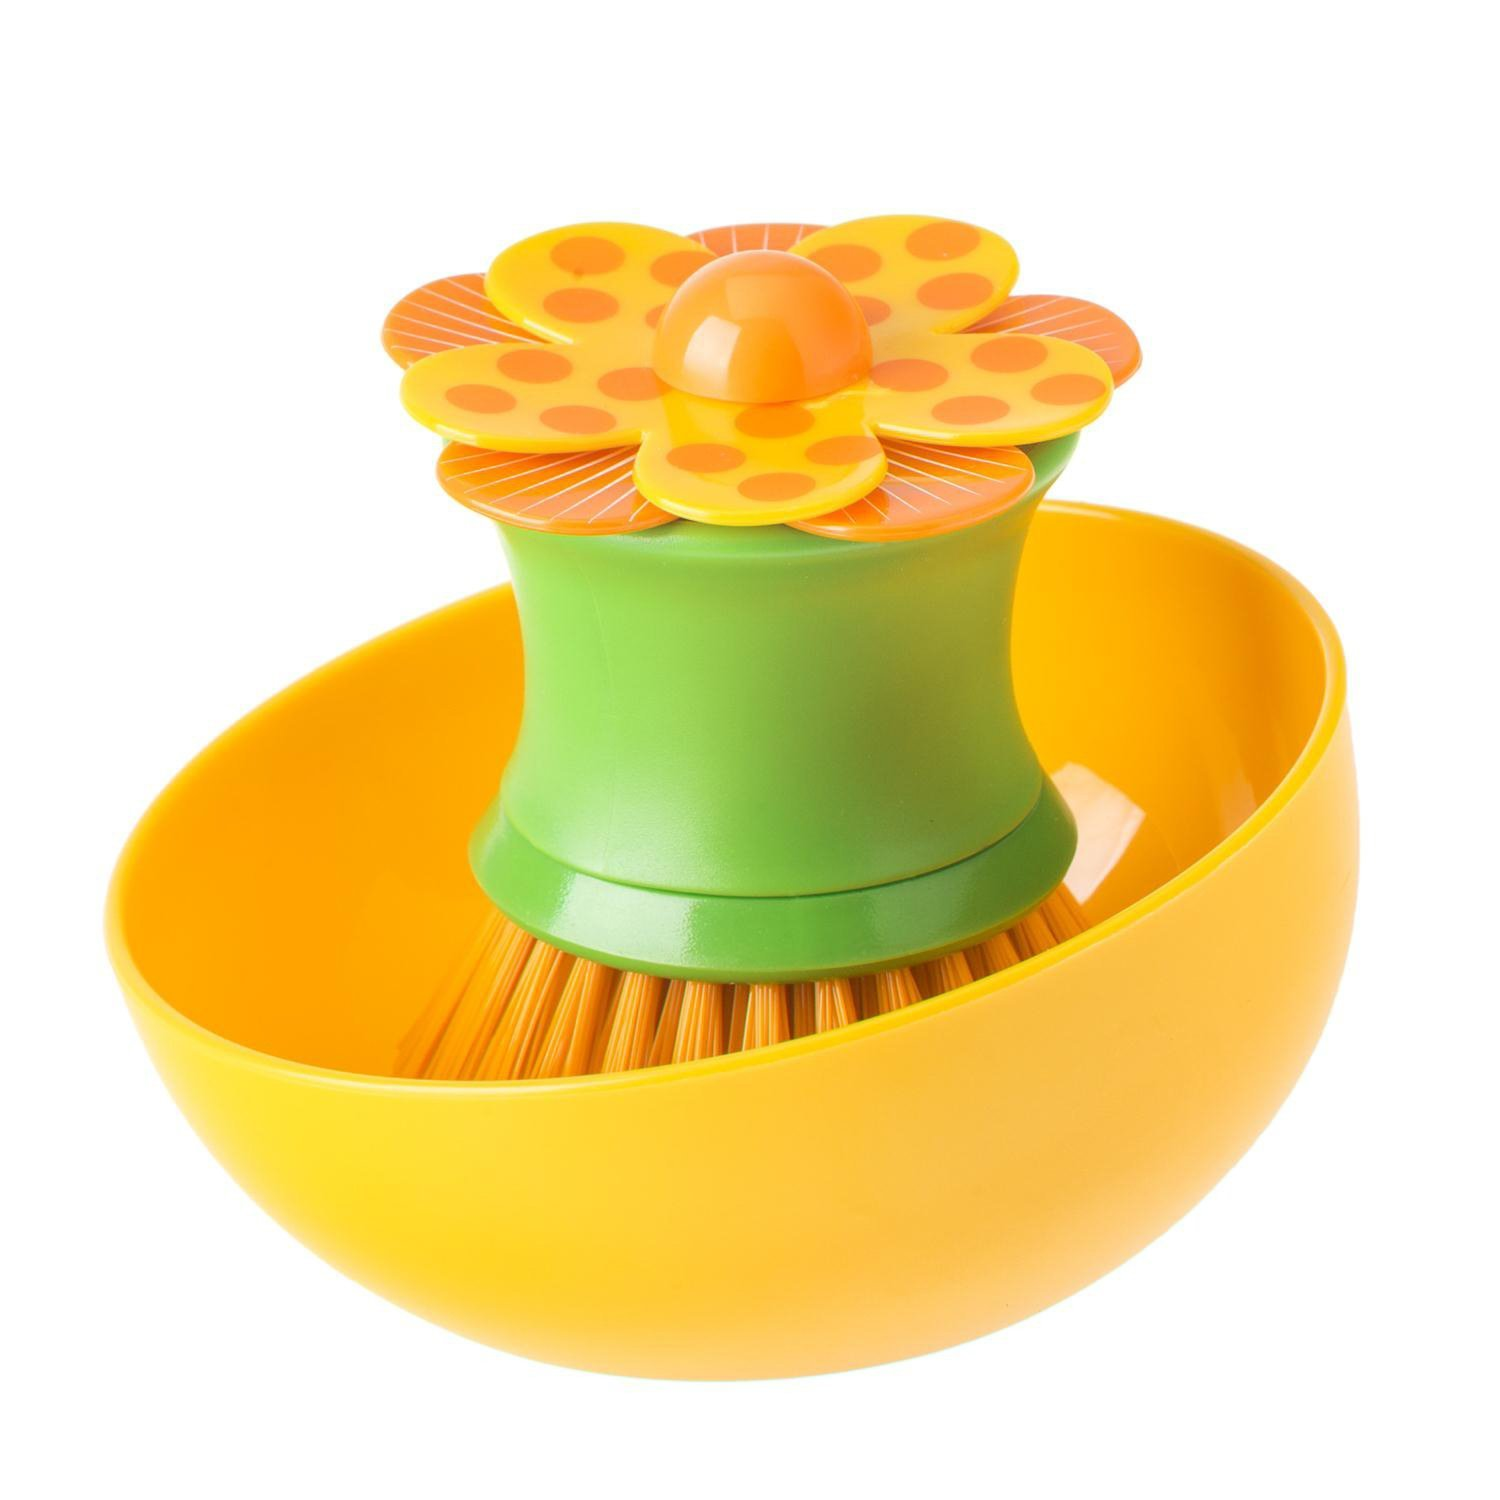 Vigar Lolaflor Orange Palm Dish Brush With Holder, 4-1/4-Inches by 4-1/4-Inches, Orange, Green